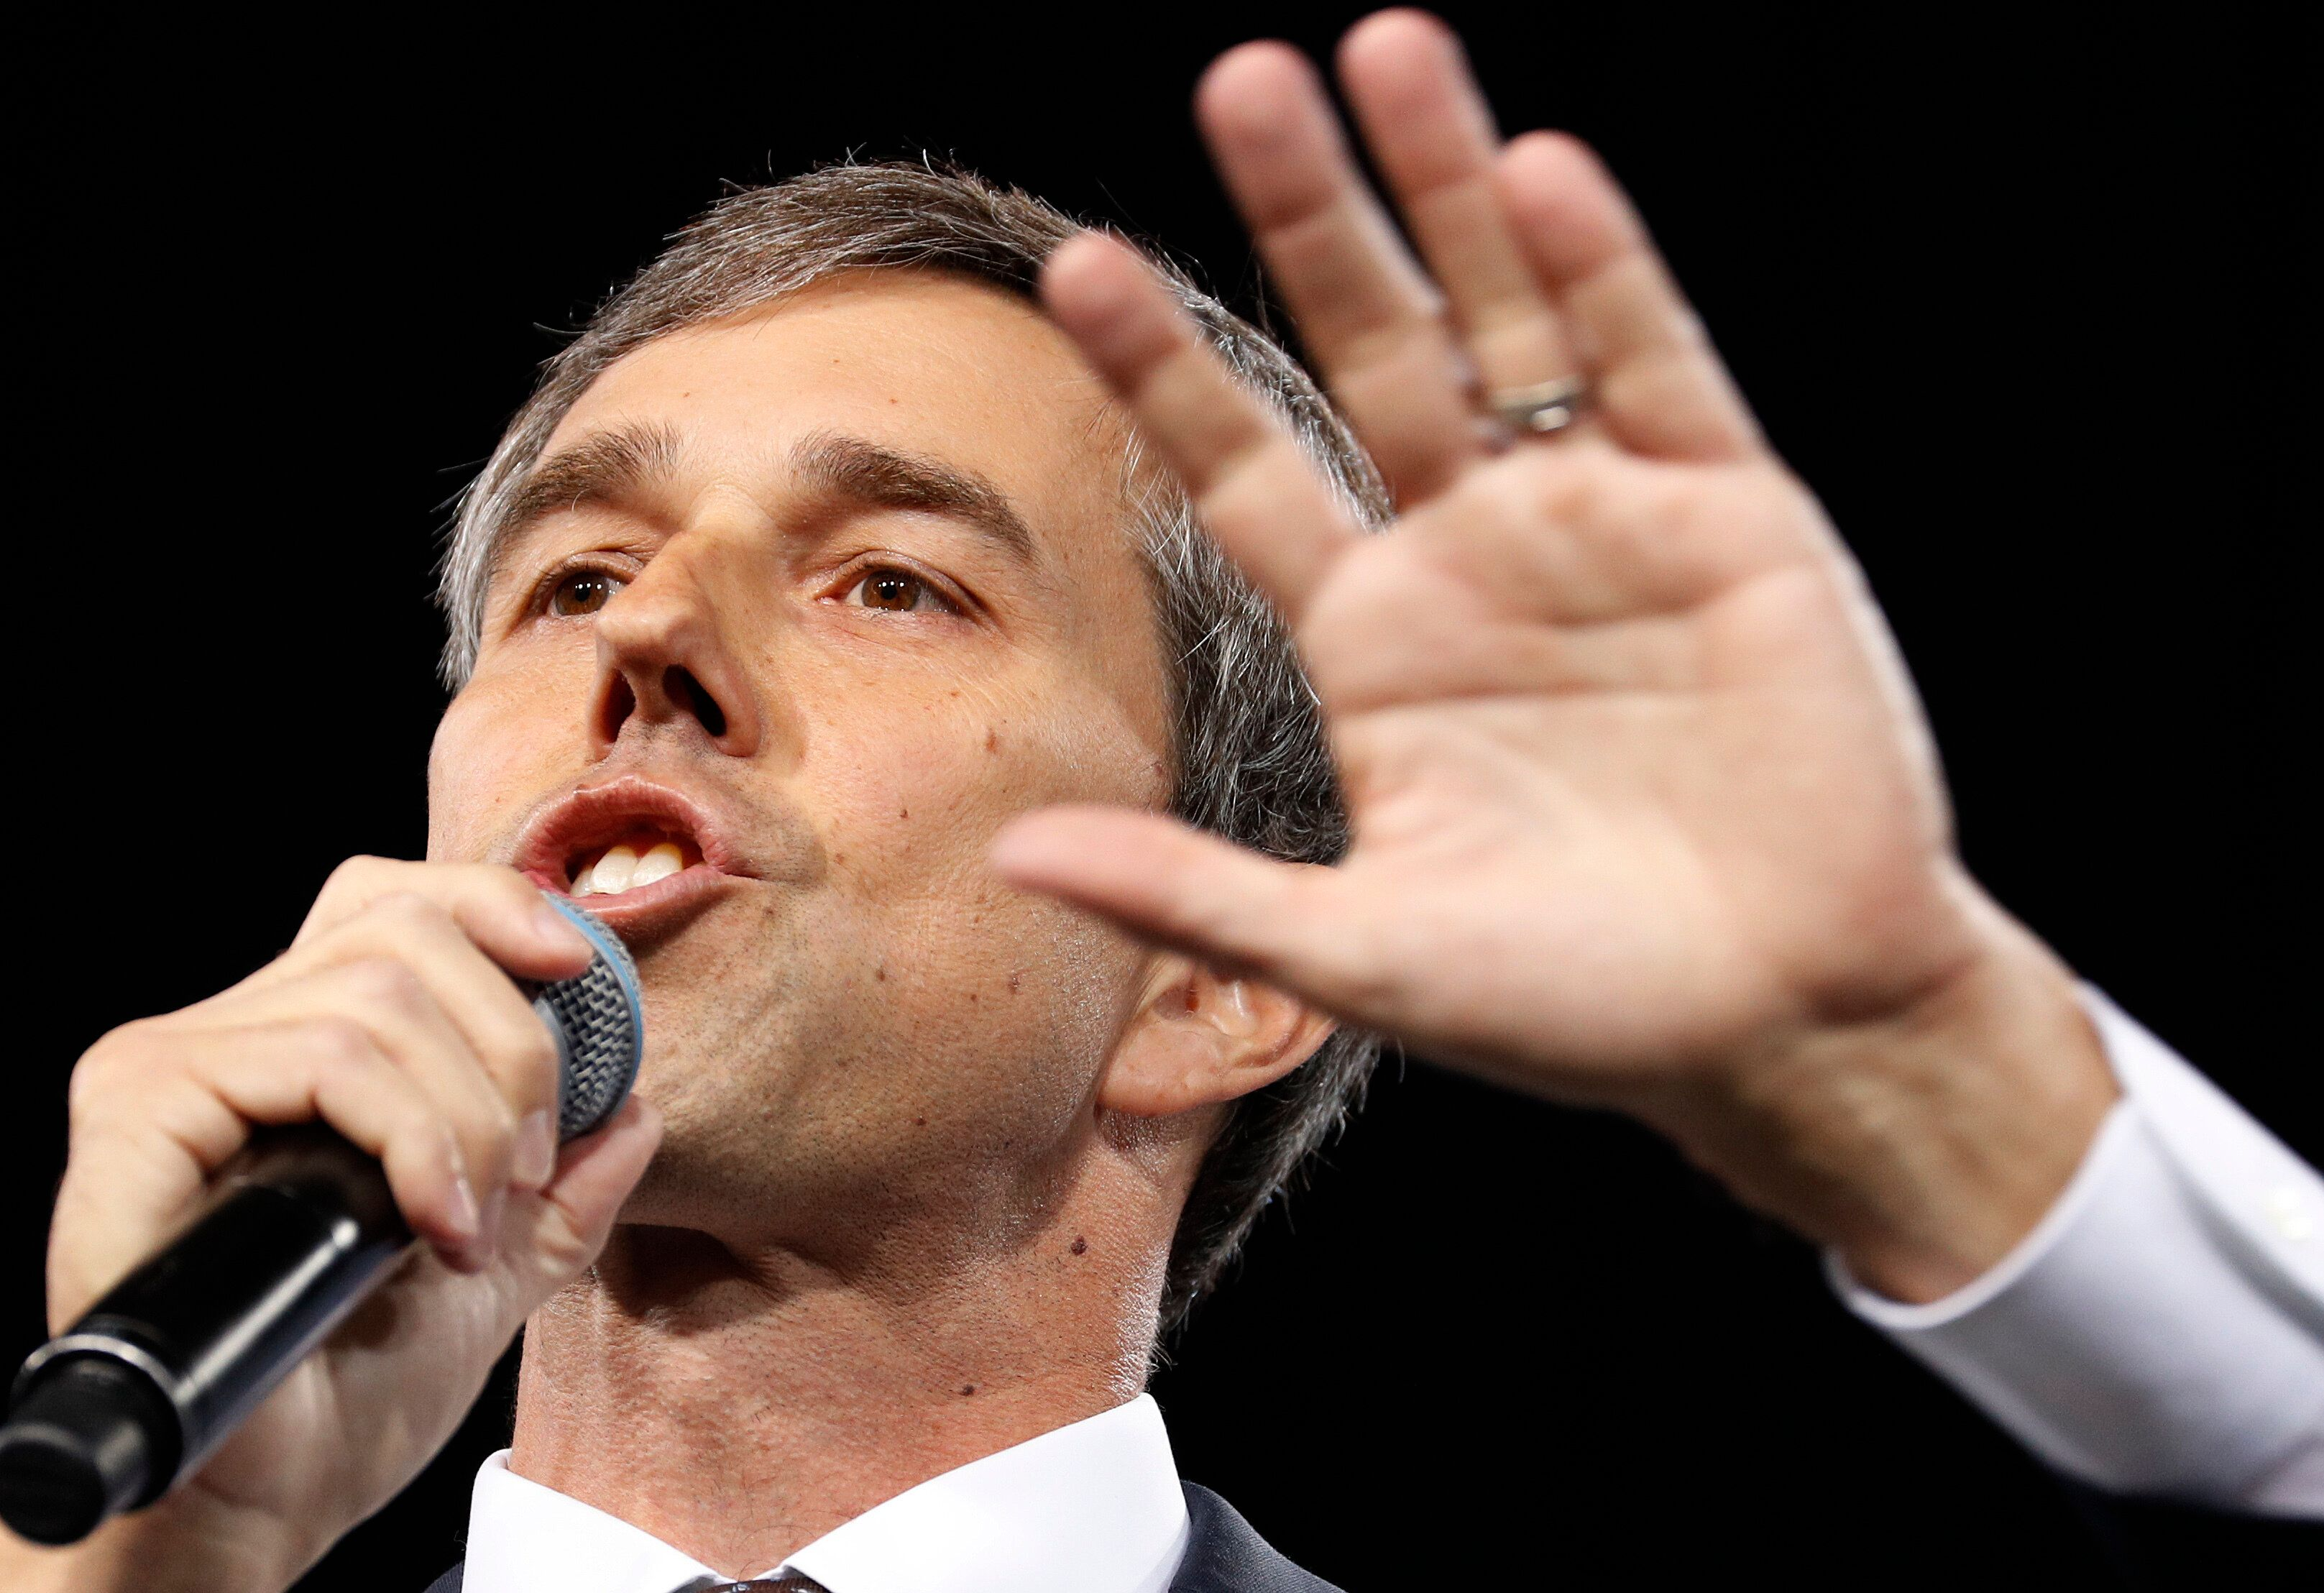 Former Rep. Beto O'Rourke released a nine-page immigration policy outline on May 29, making him the second Democratic preside